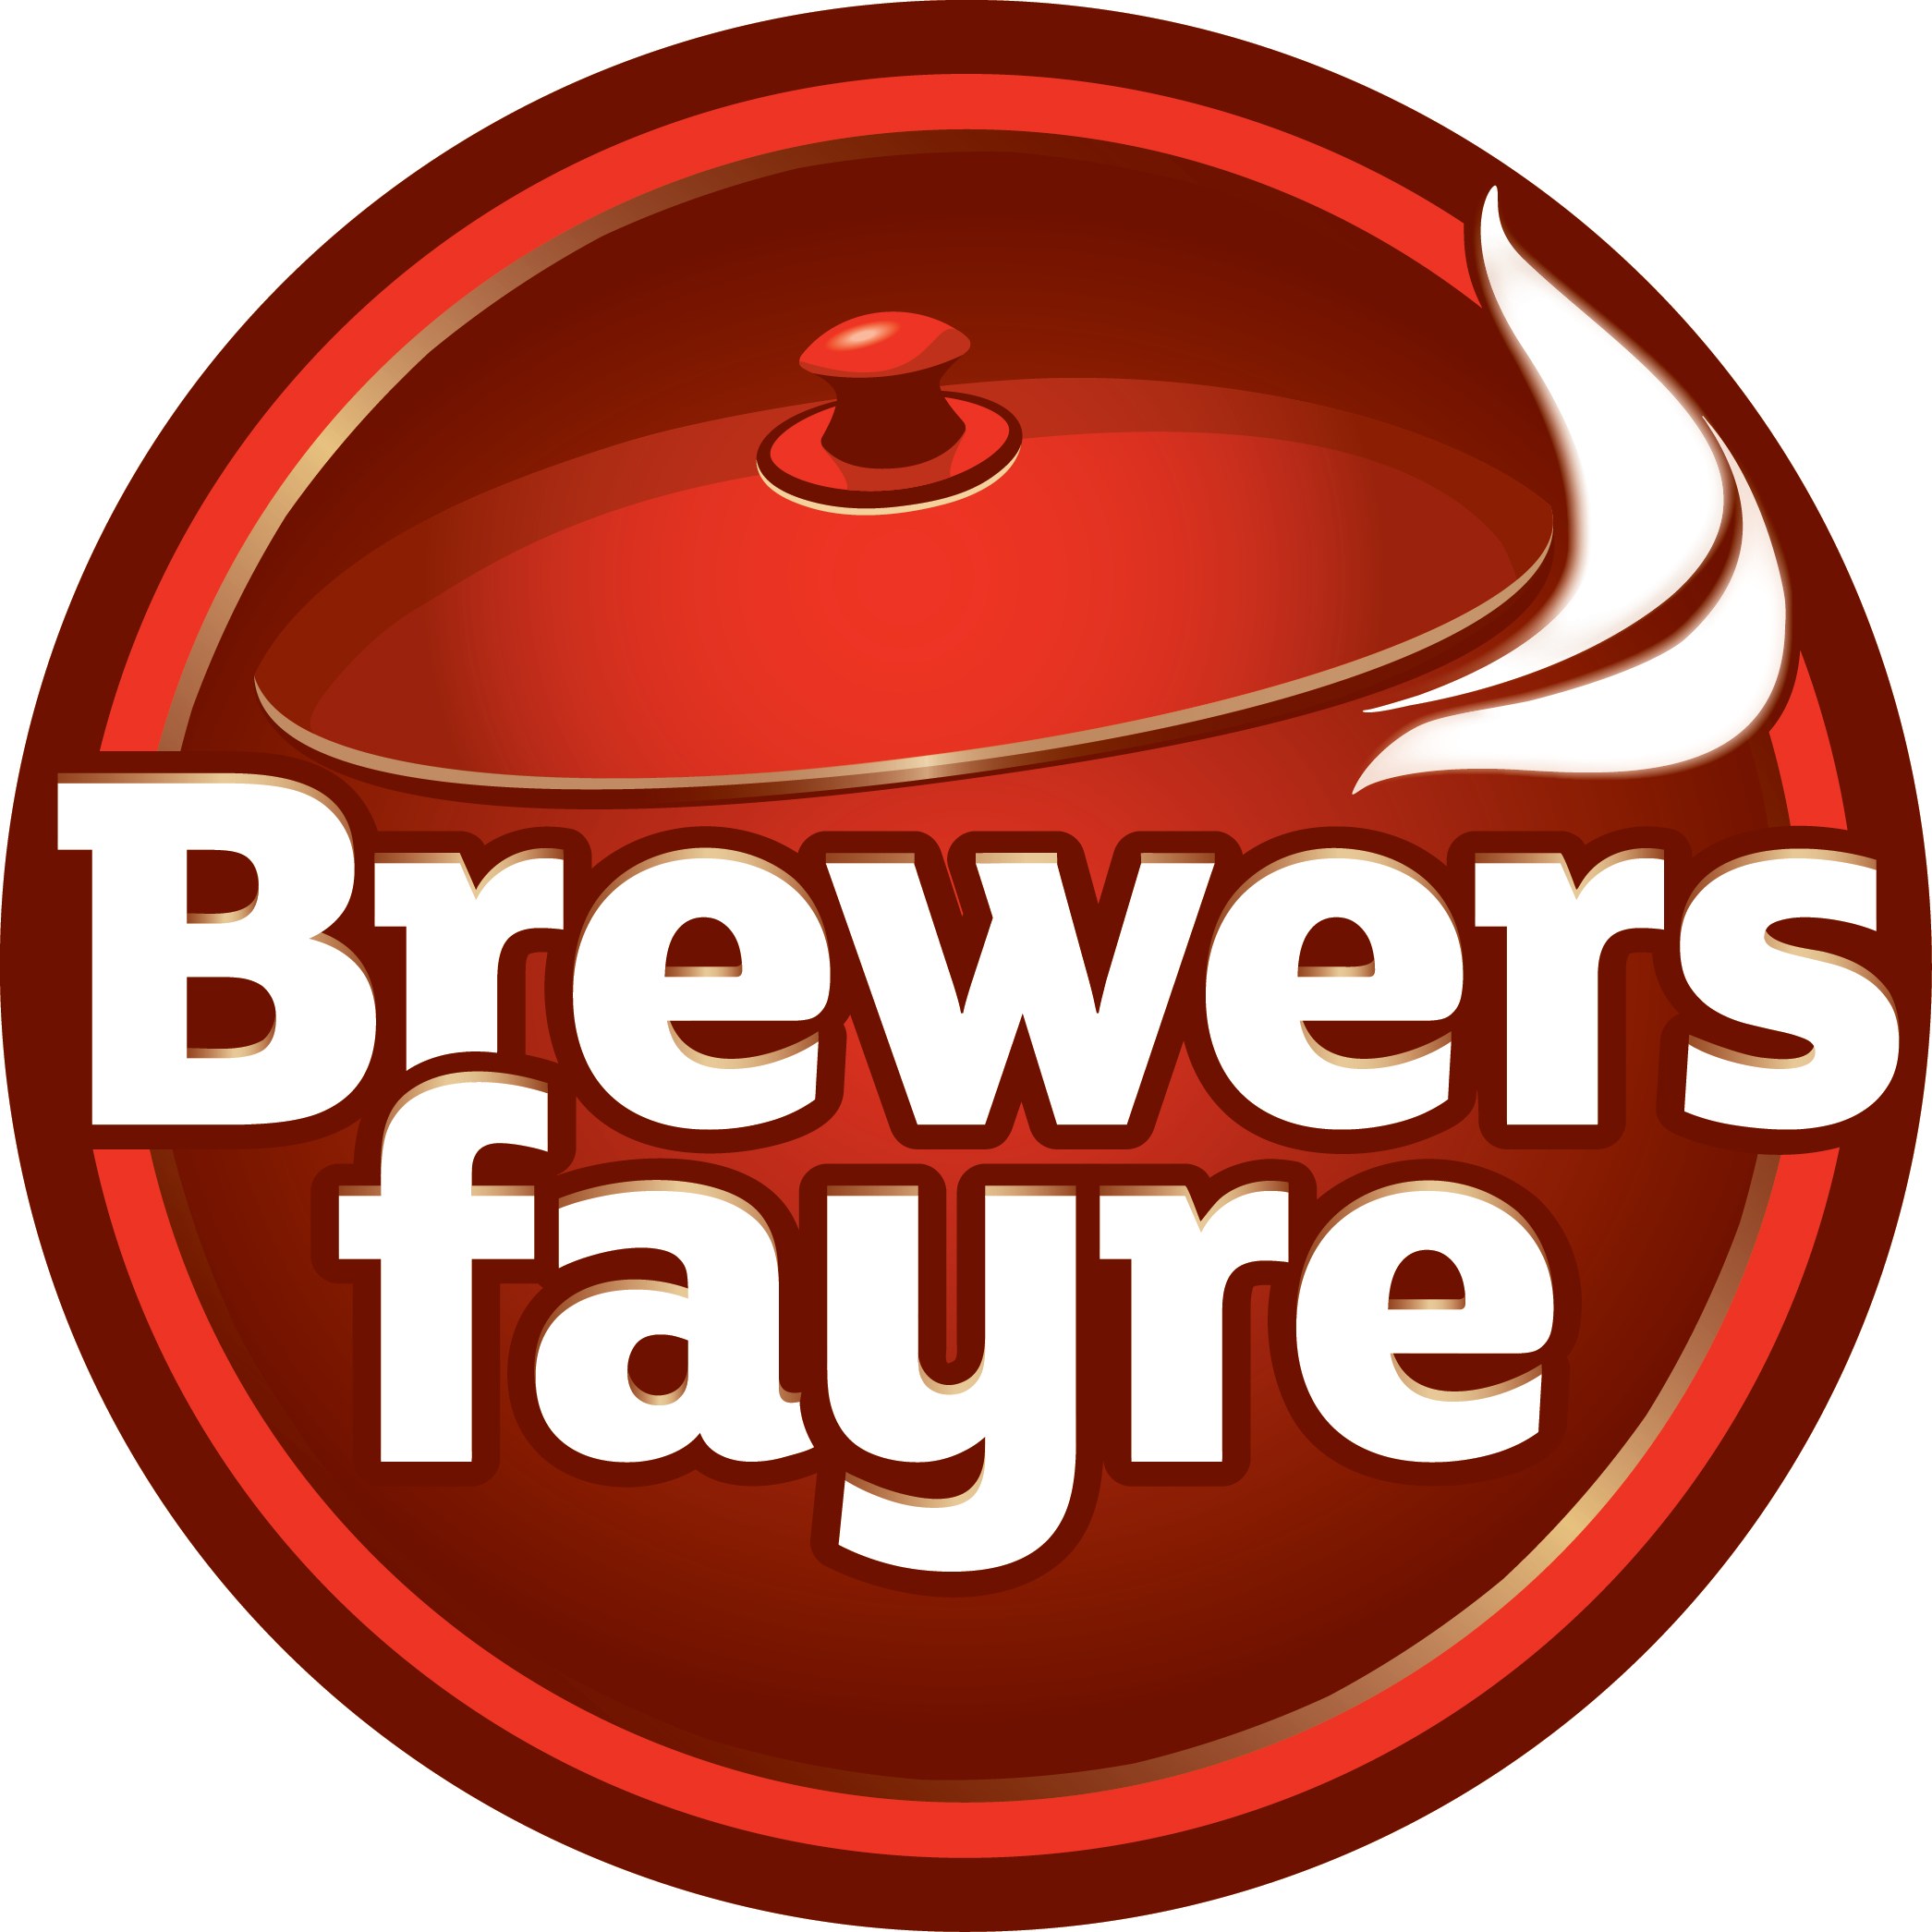 Brewers Fayre O'Bridge